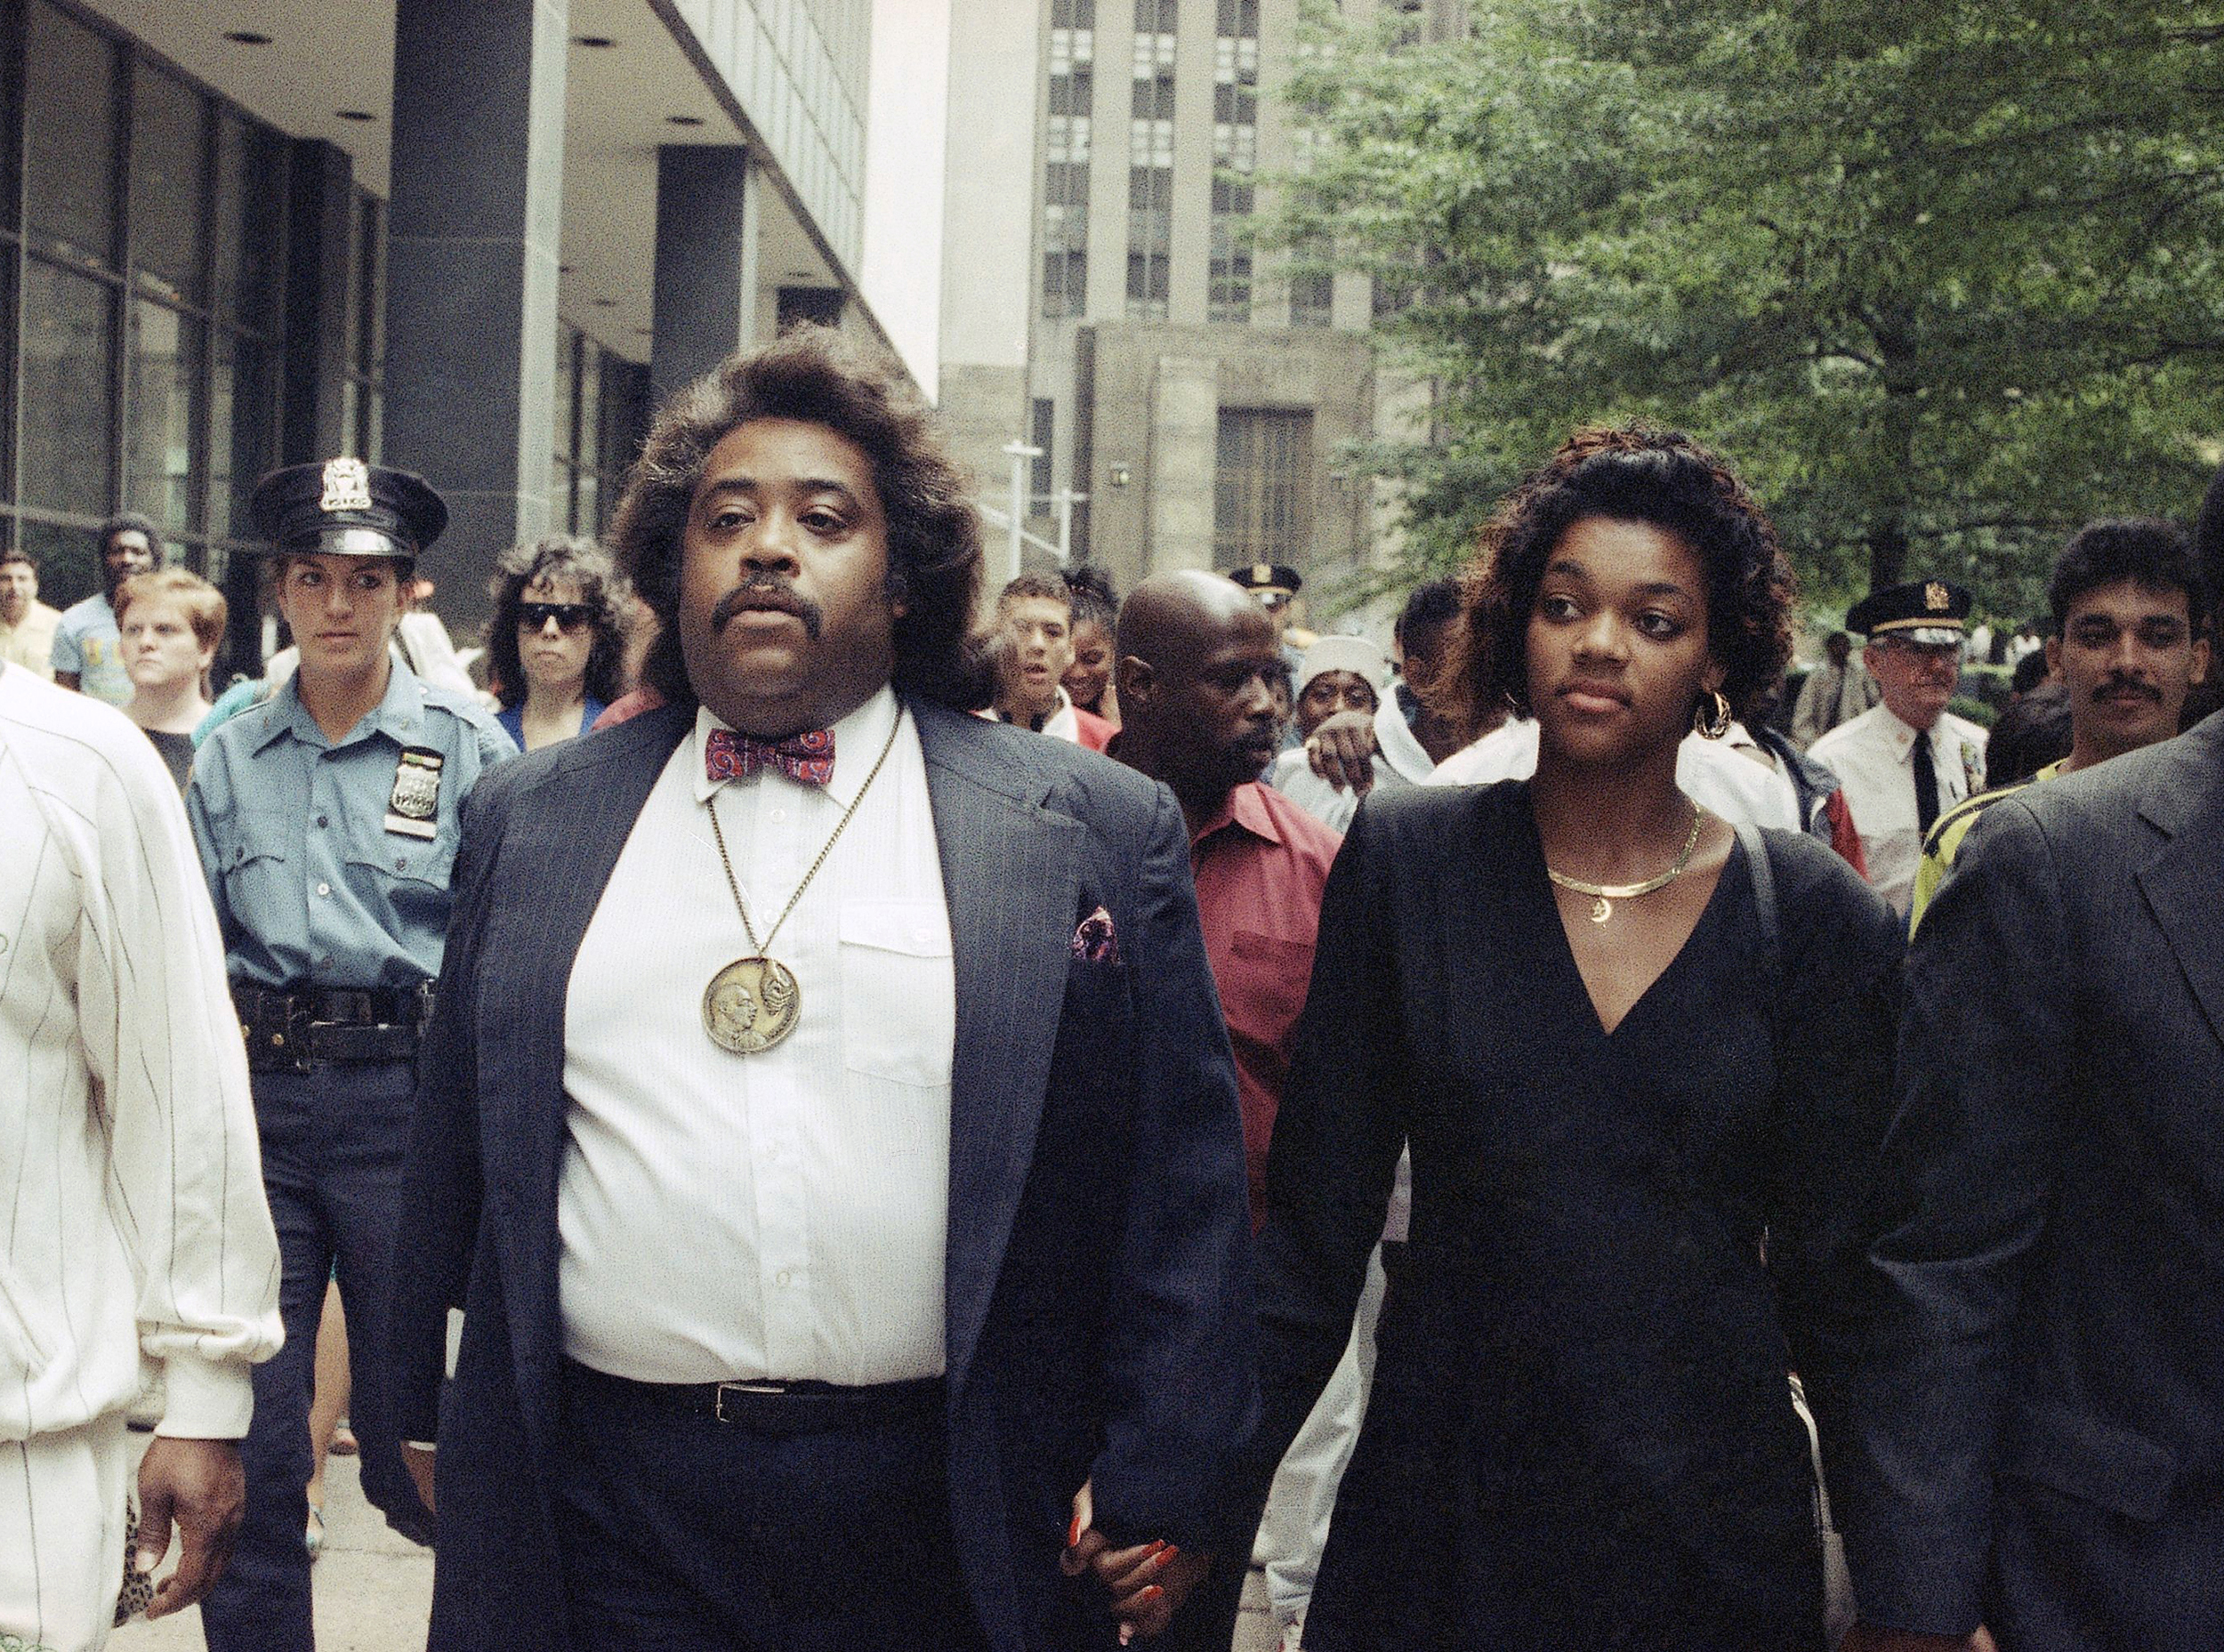 Image: Rev. Al Sharpton, left, and Tawana Brawley in 1990